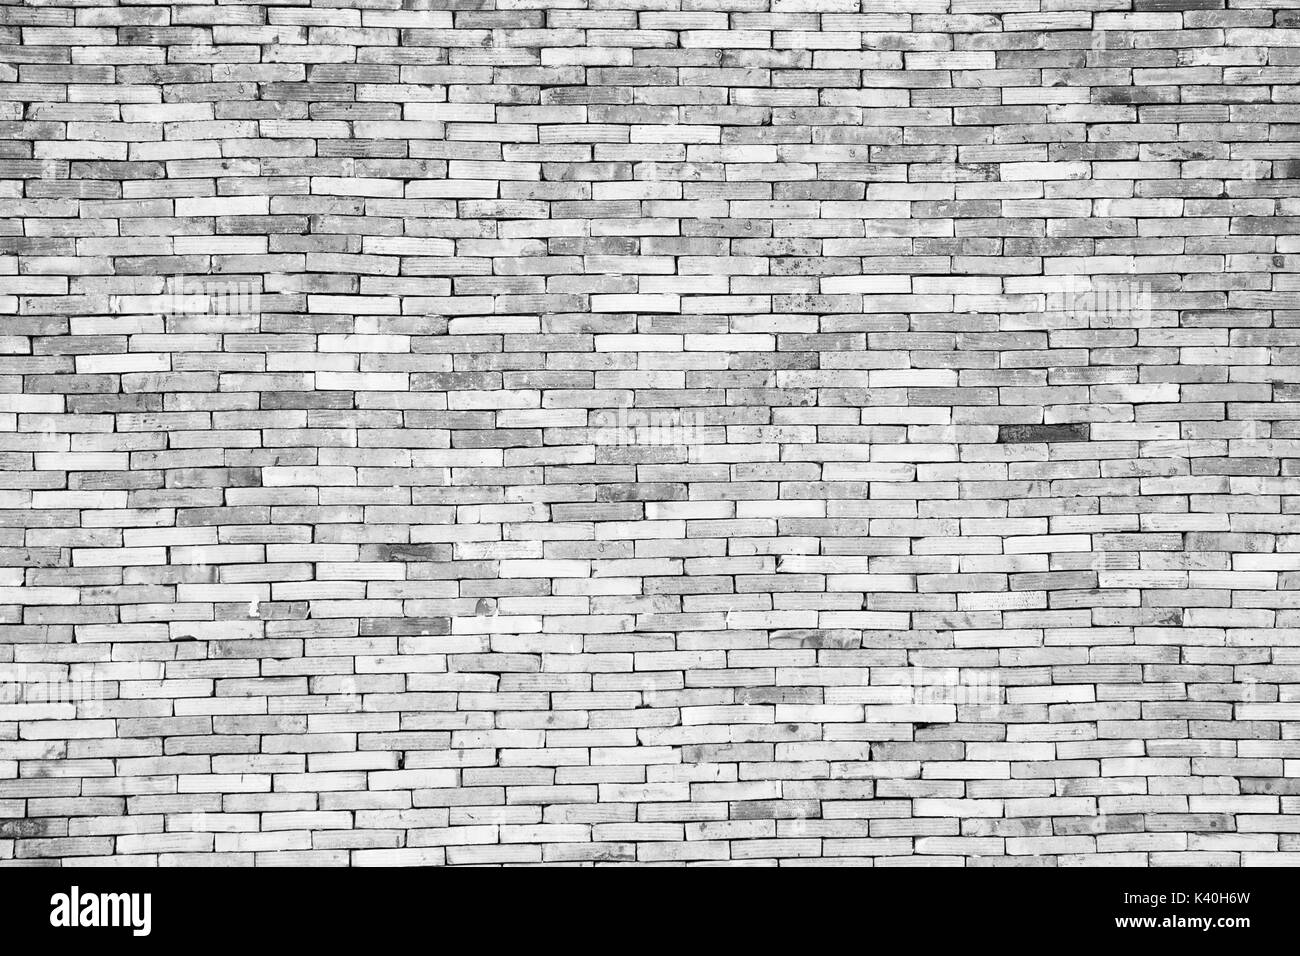 Old White Brick Wall Texture Design Empty White Brick